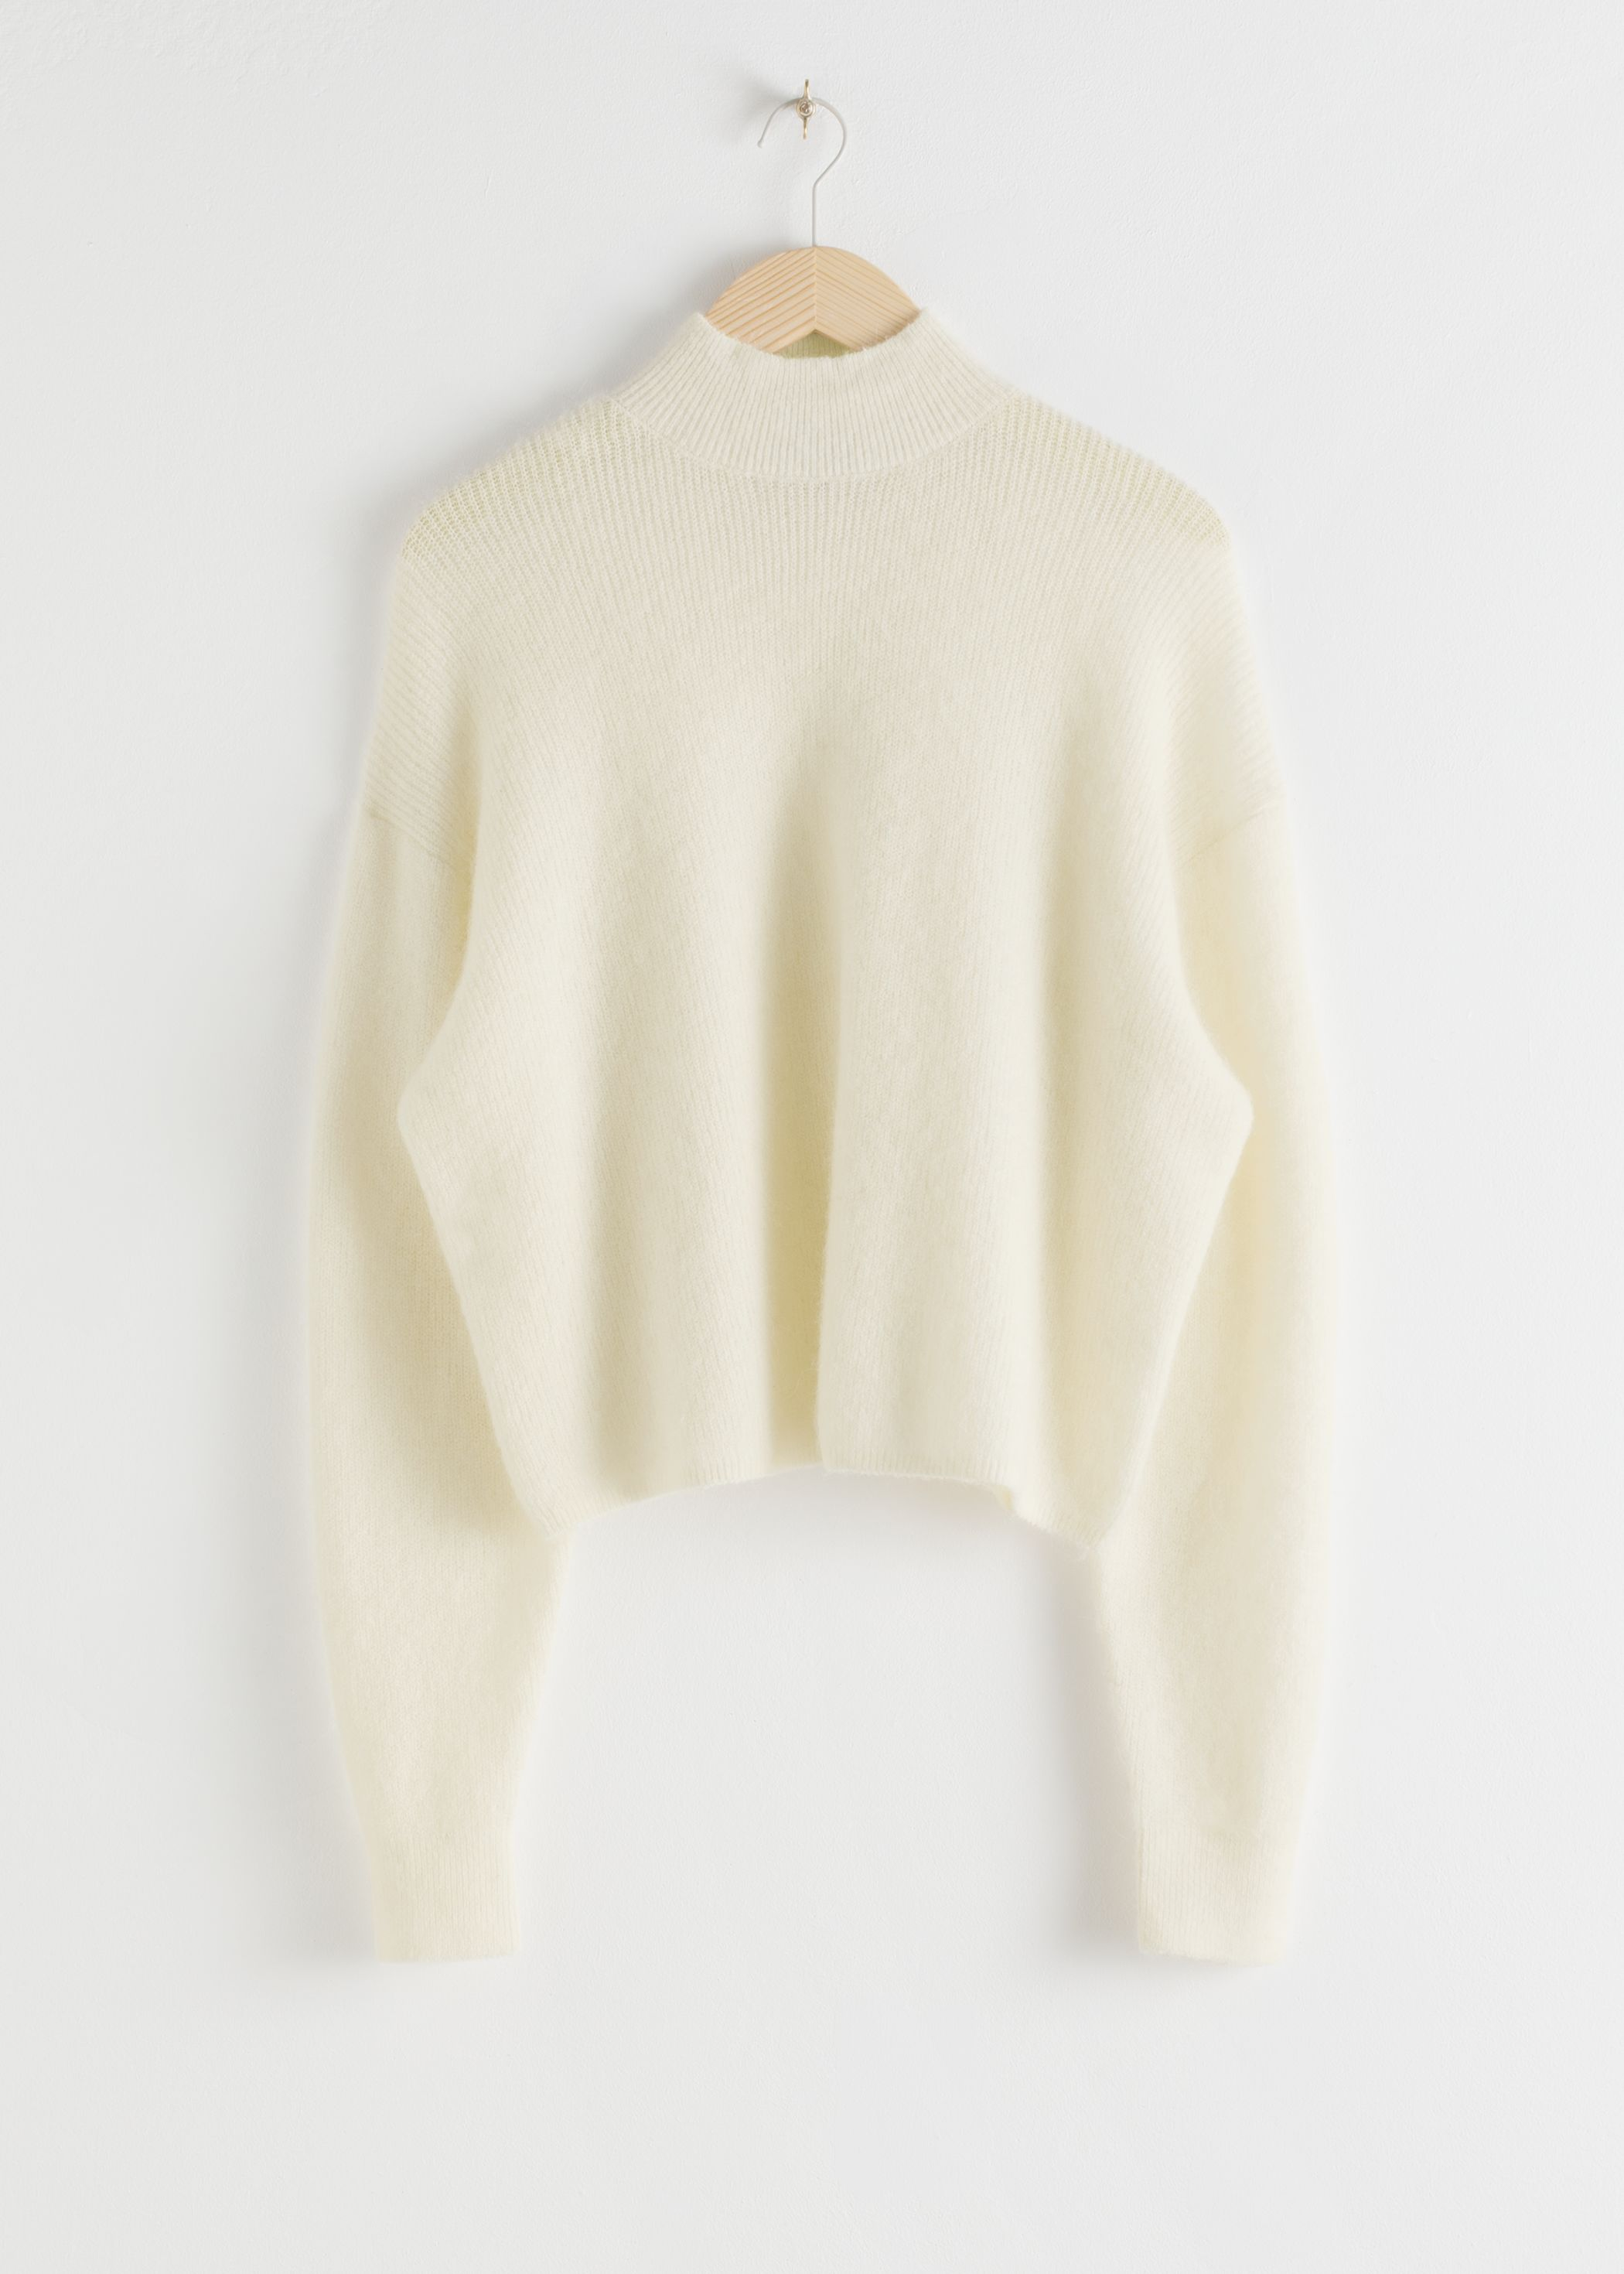 Wool Blend Oversized Mock Neck Sweater